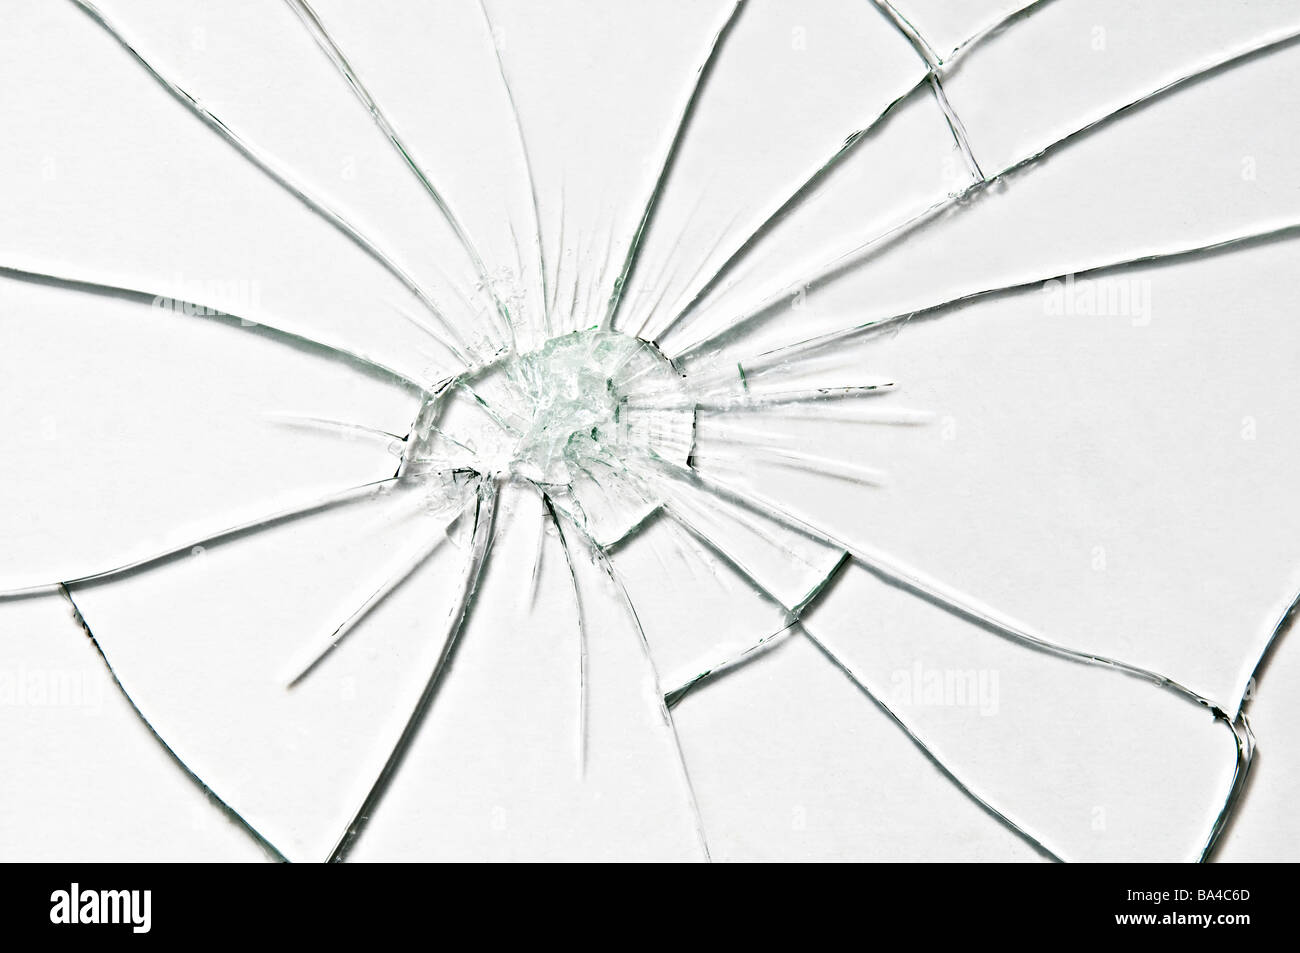 broken glass closeup - Stock Image